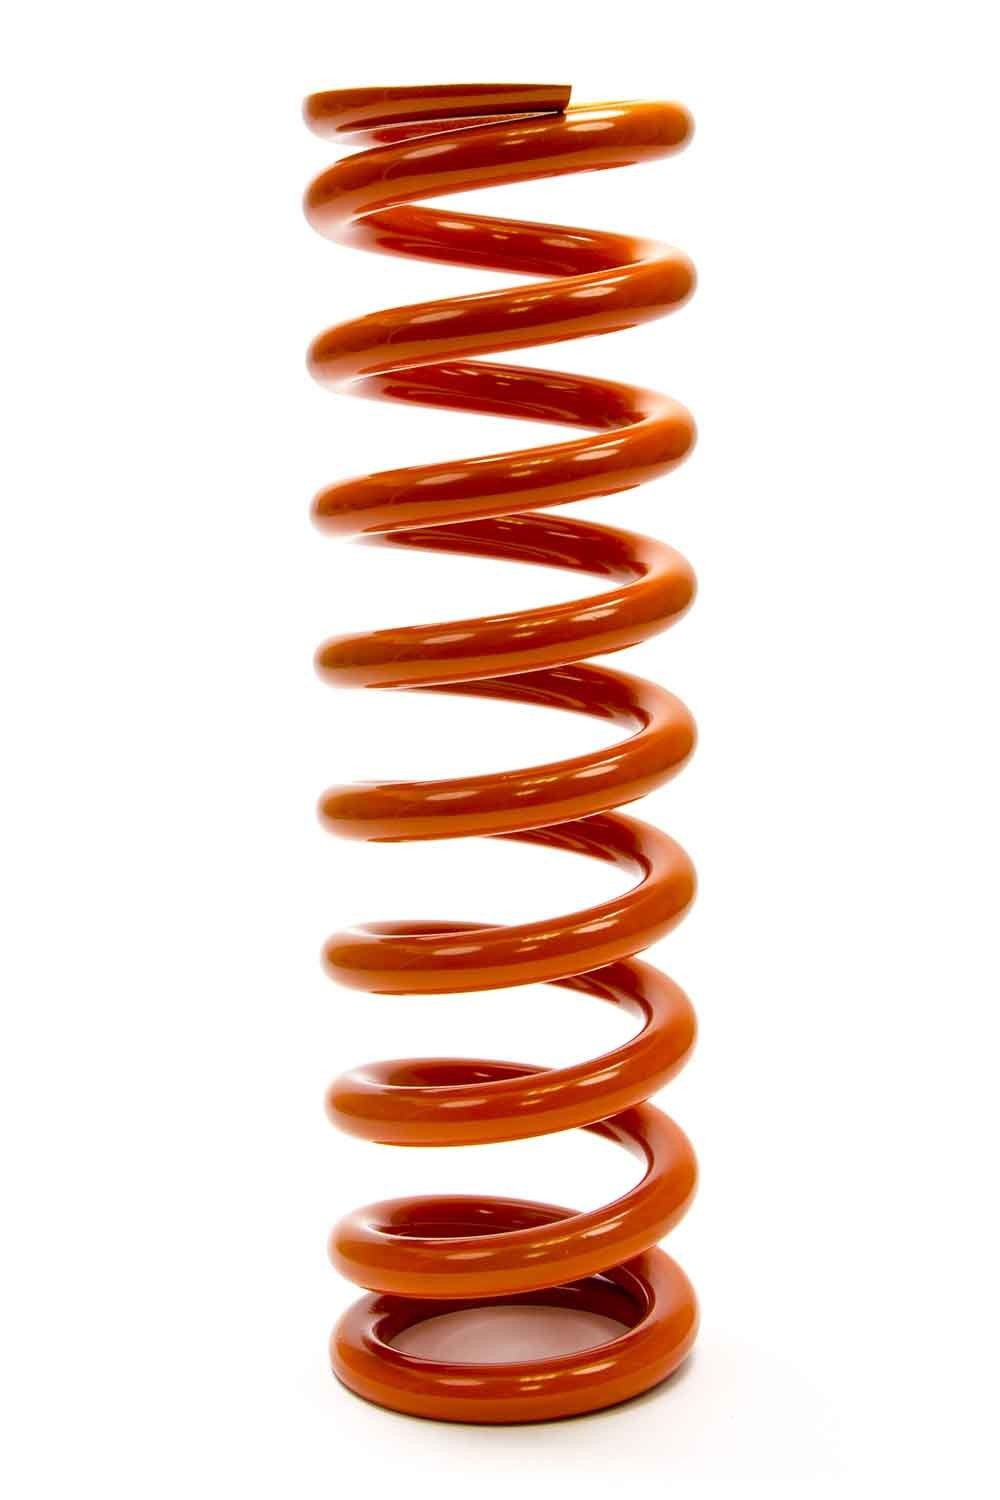 PAC Racing Springs PAC-12X2.5X1000 Coil Spring, Coil-Over, 2.500 in ID, 12.000 in Length, 1000 lb/in Spring Rate, Orange Powder Coat, Each